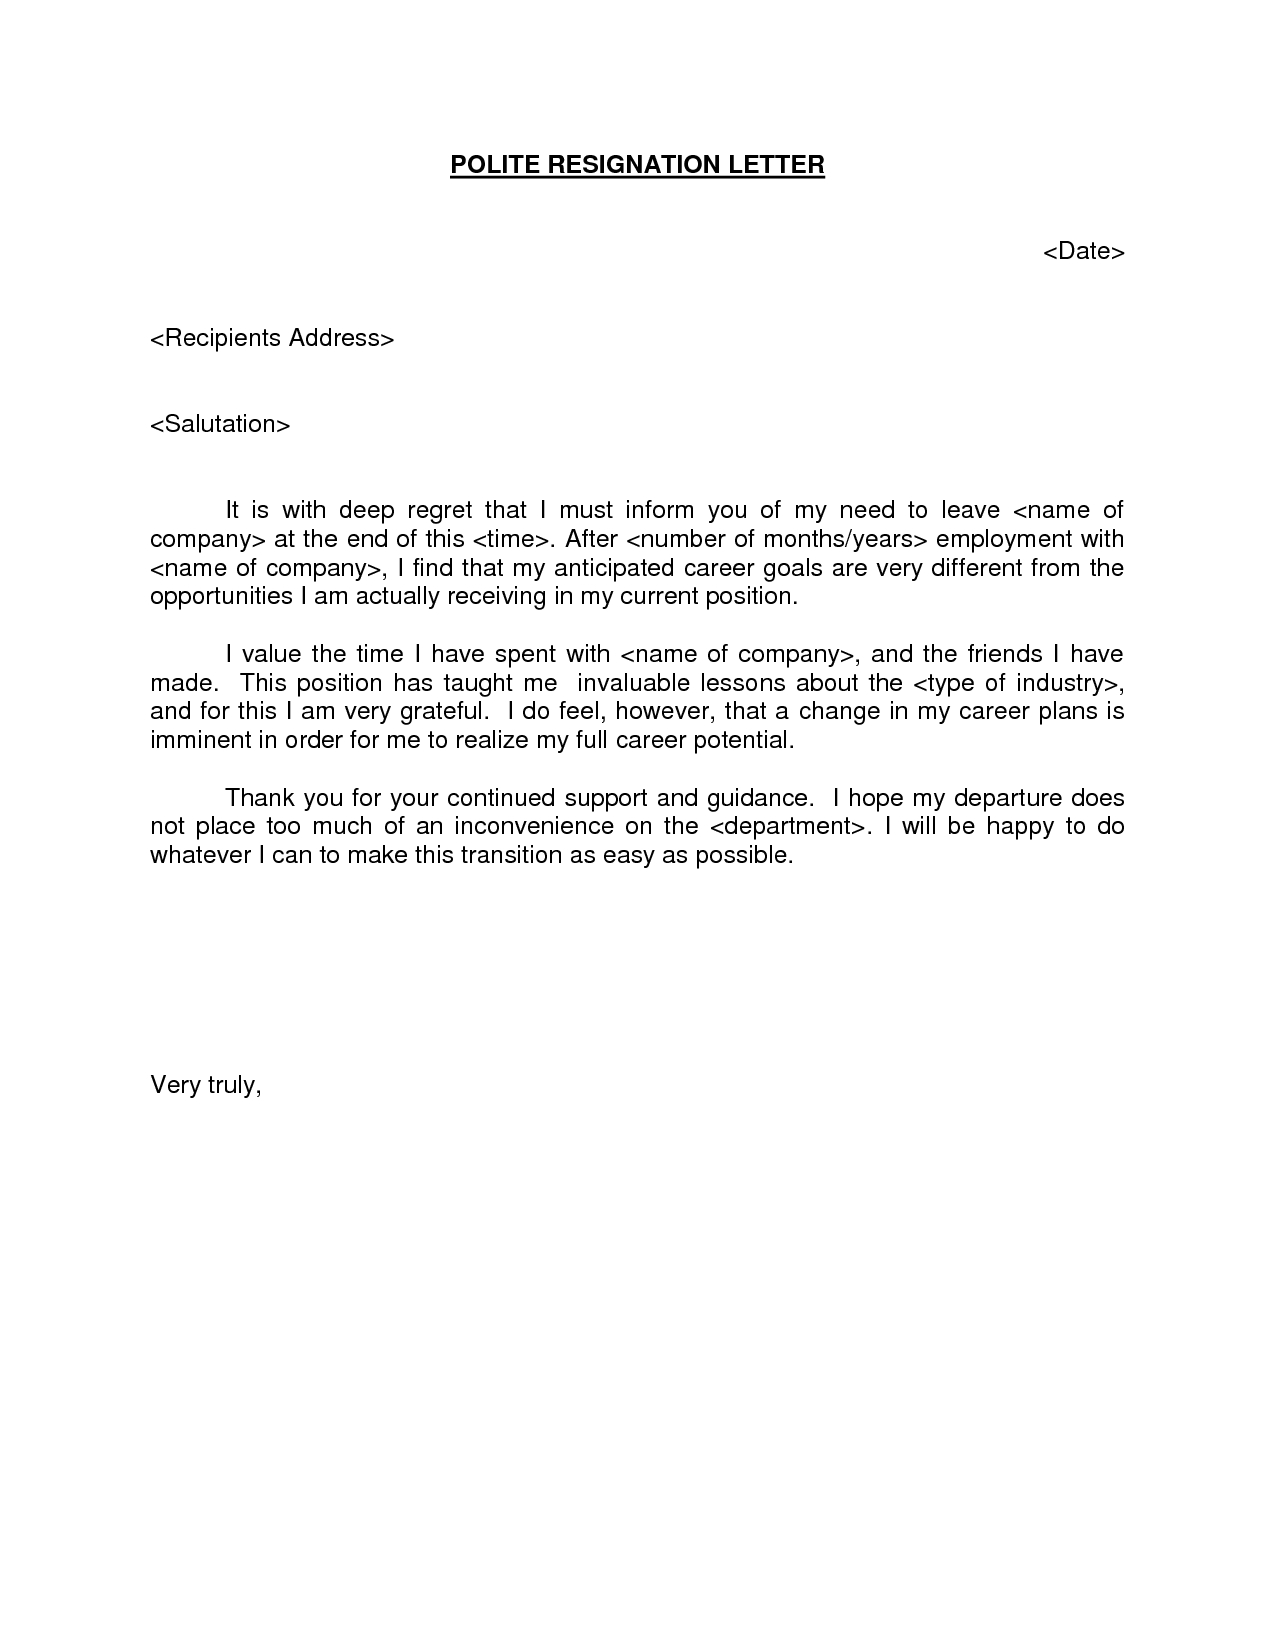 Medical Emergency Letter Template - Polite Resignation Letter Bestdealformoneywriting A Letter